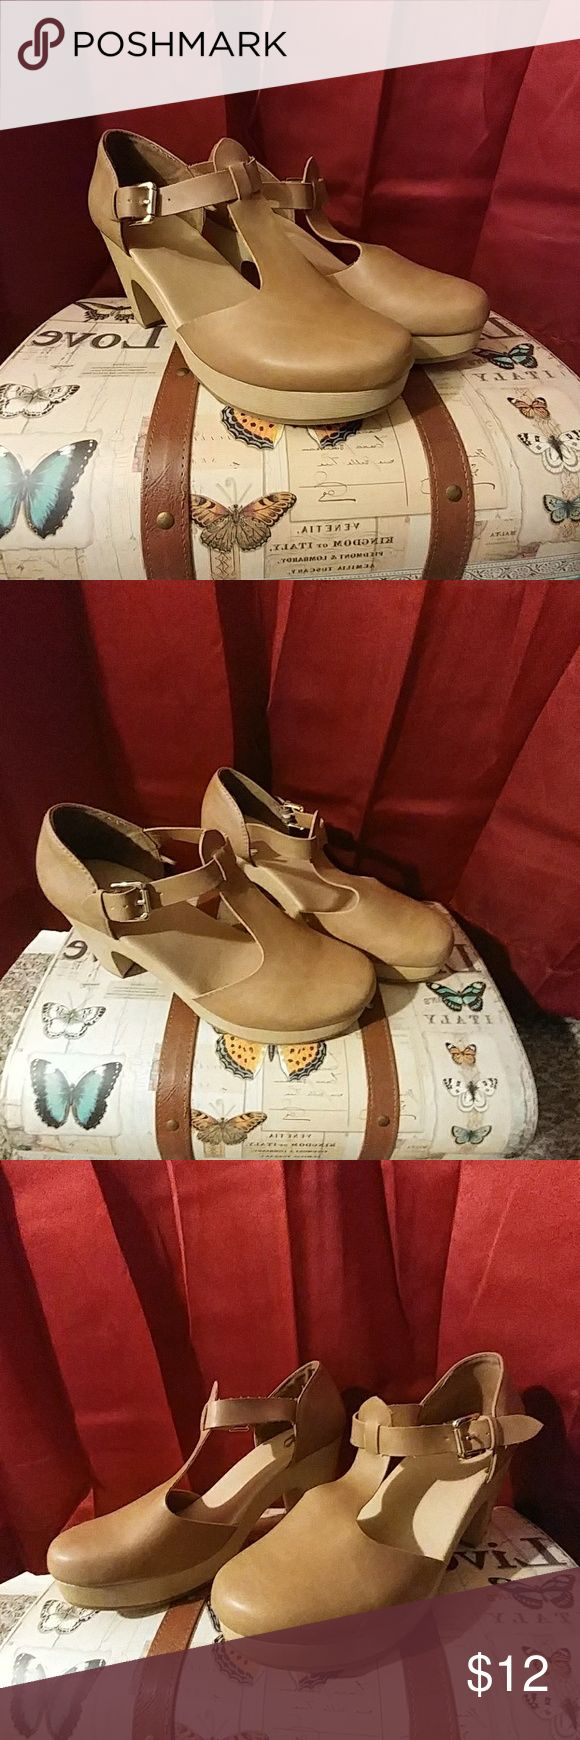 Heeled Clogs Never Worn, Heel: 1 3/4in. Old Navy Shoes Mules & Clogs